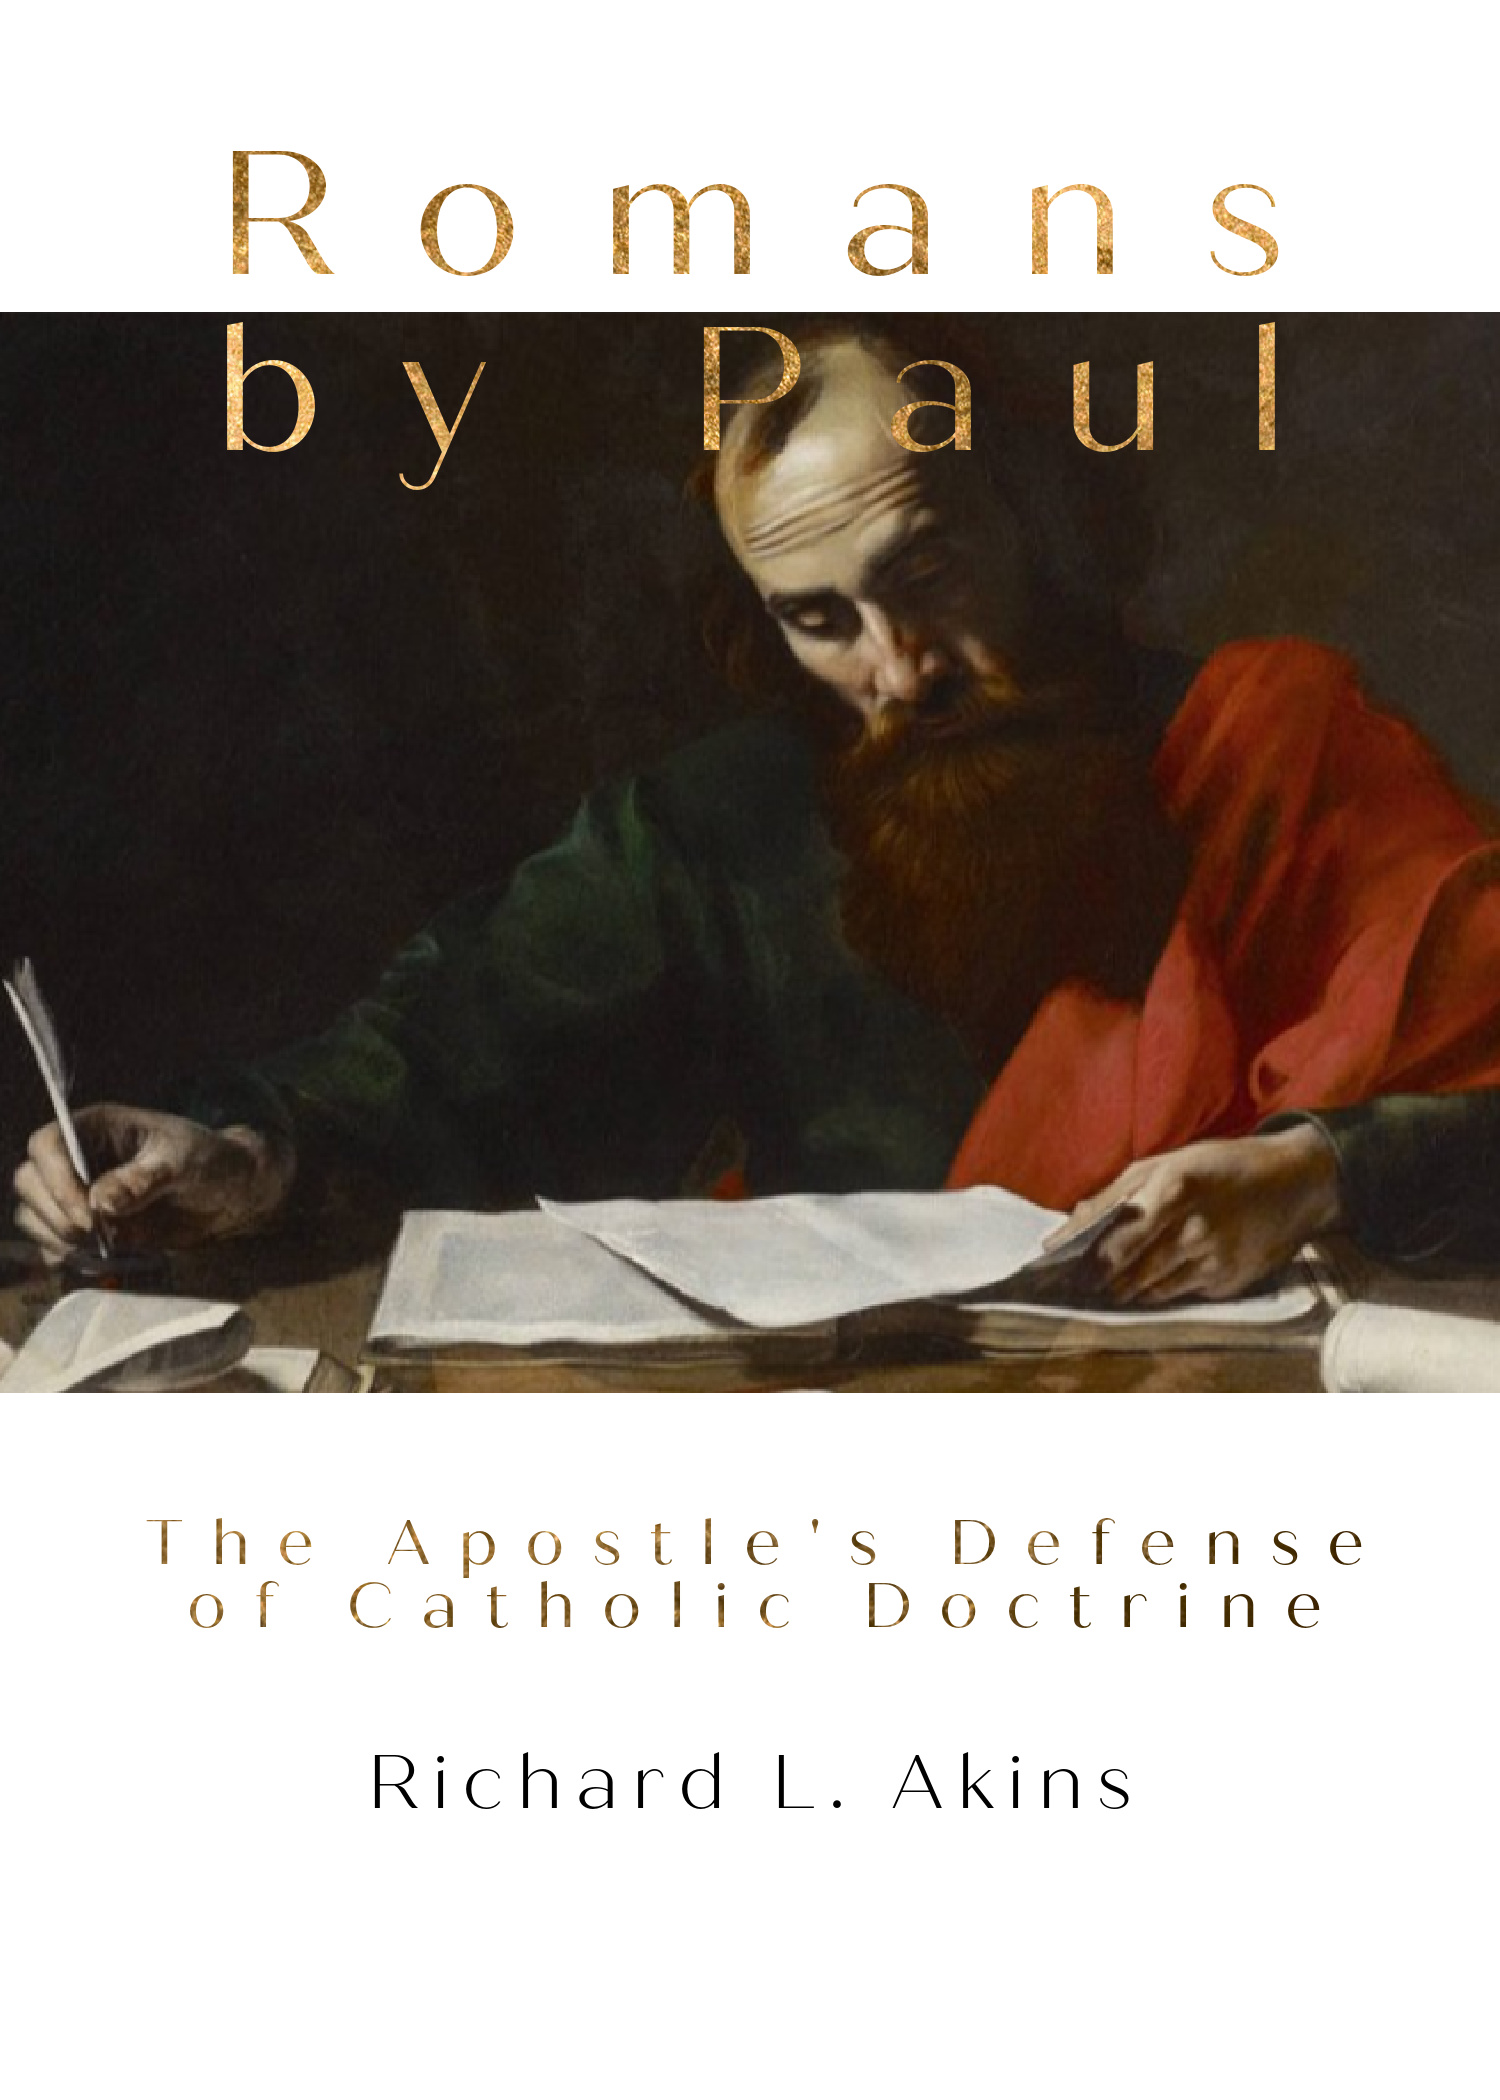 Romans by Paul, authored by Richard L. Akins